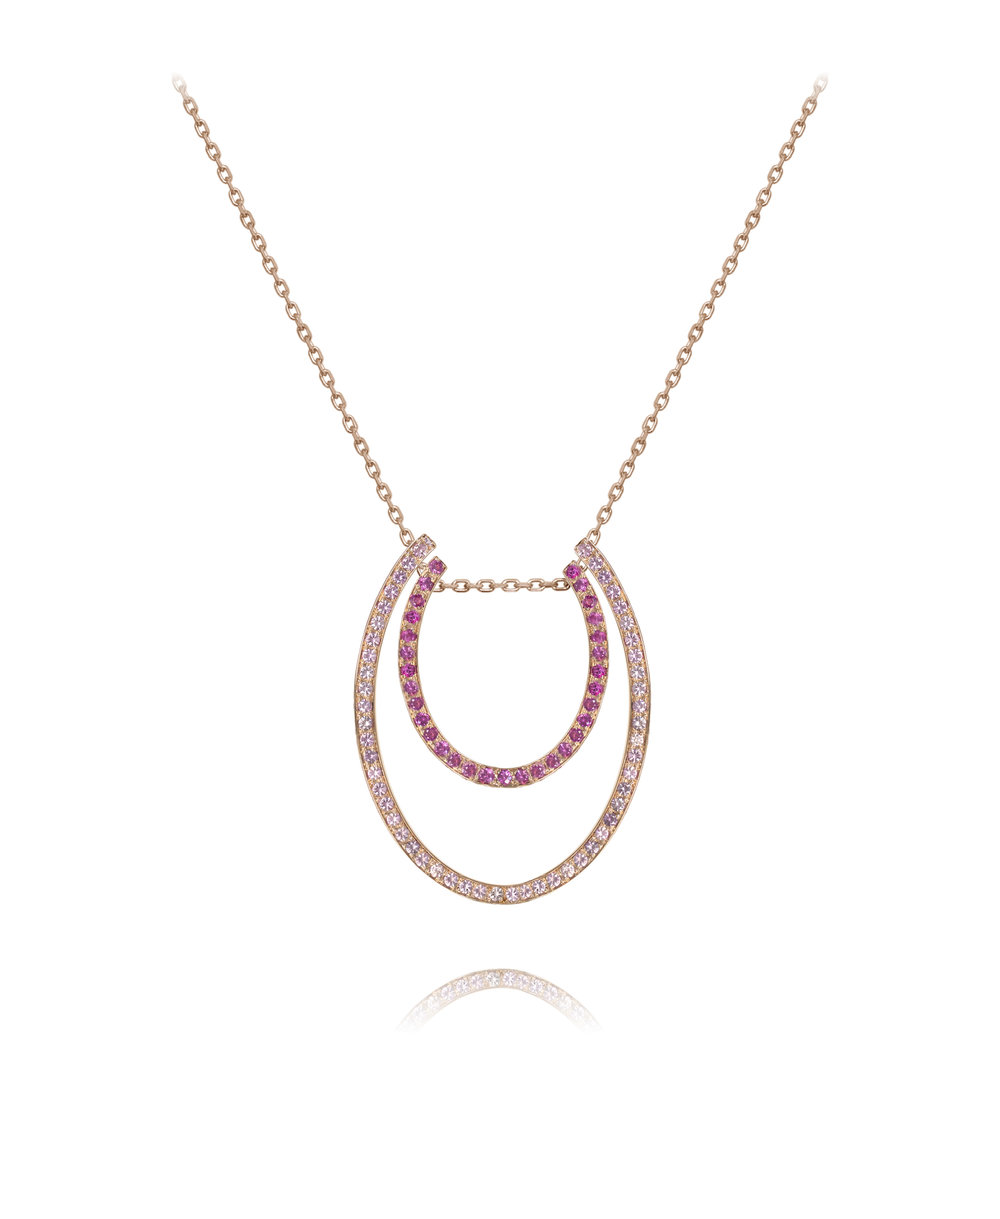 Necklace  18KT Rose Gold, Pink Sapphires  REF. MOU266